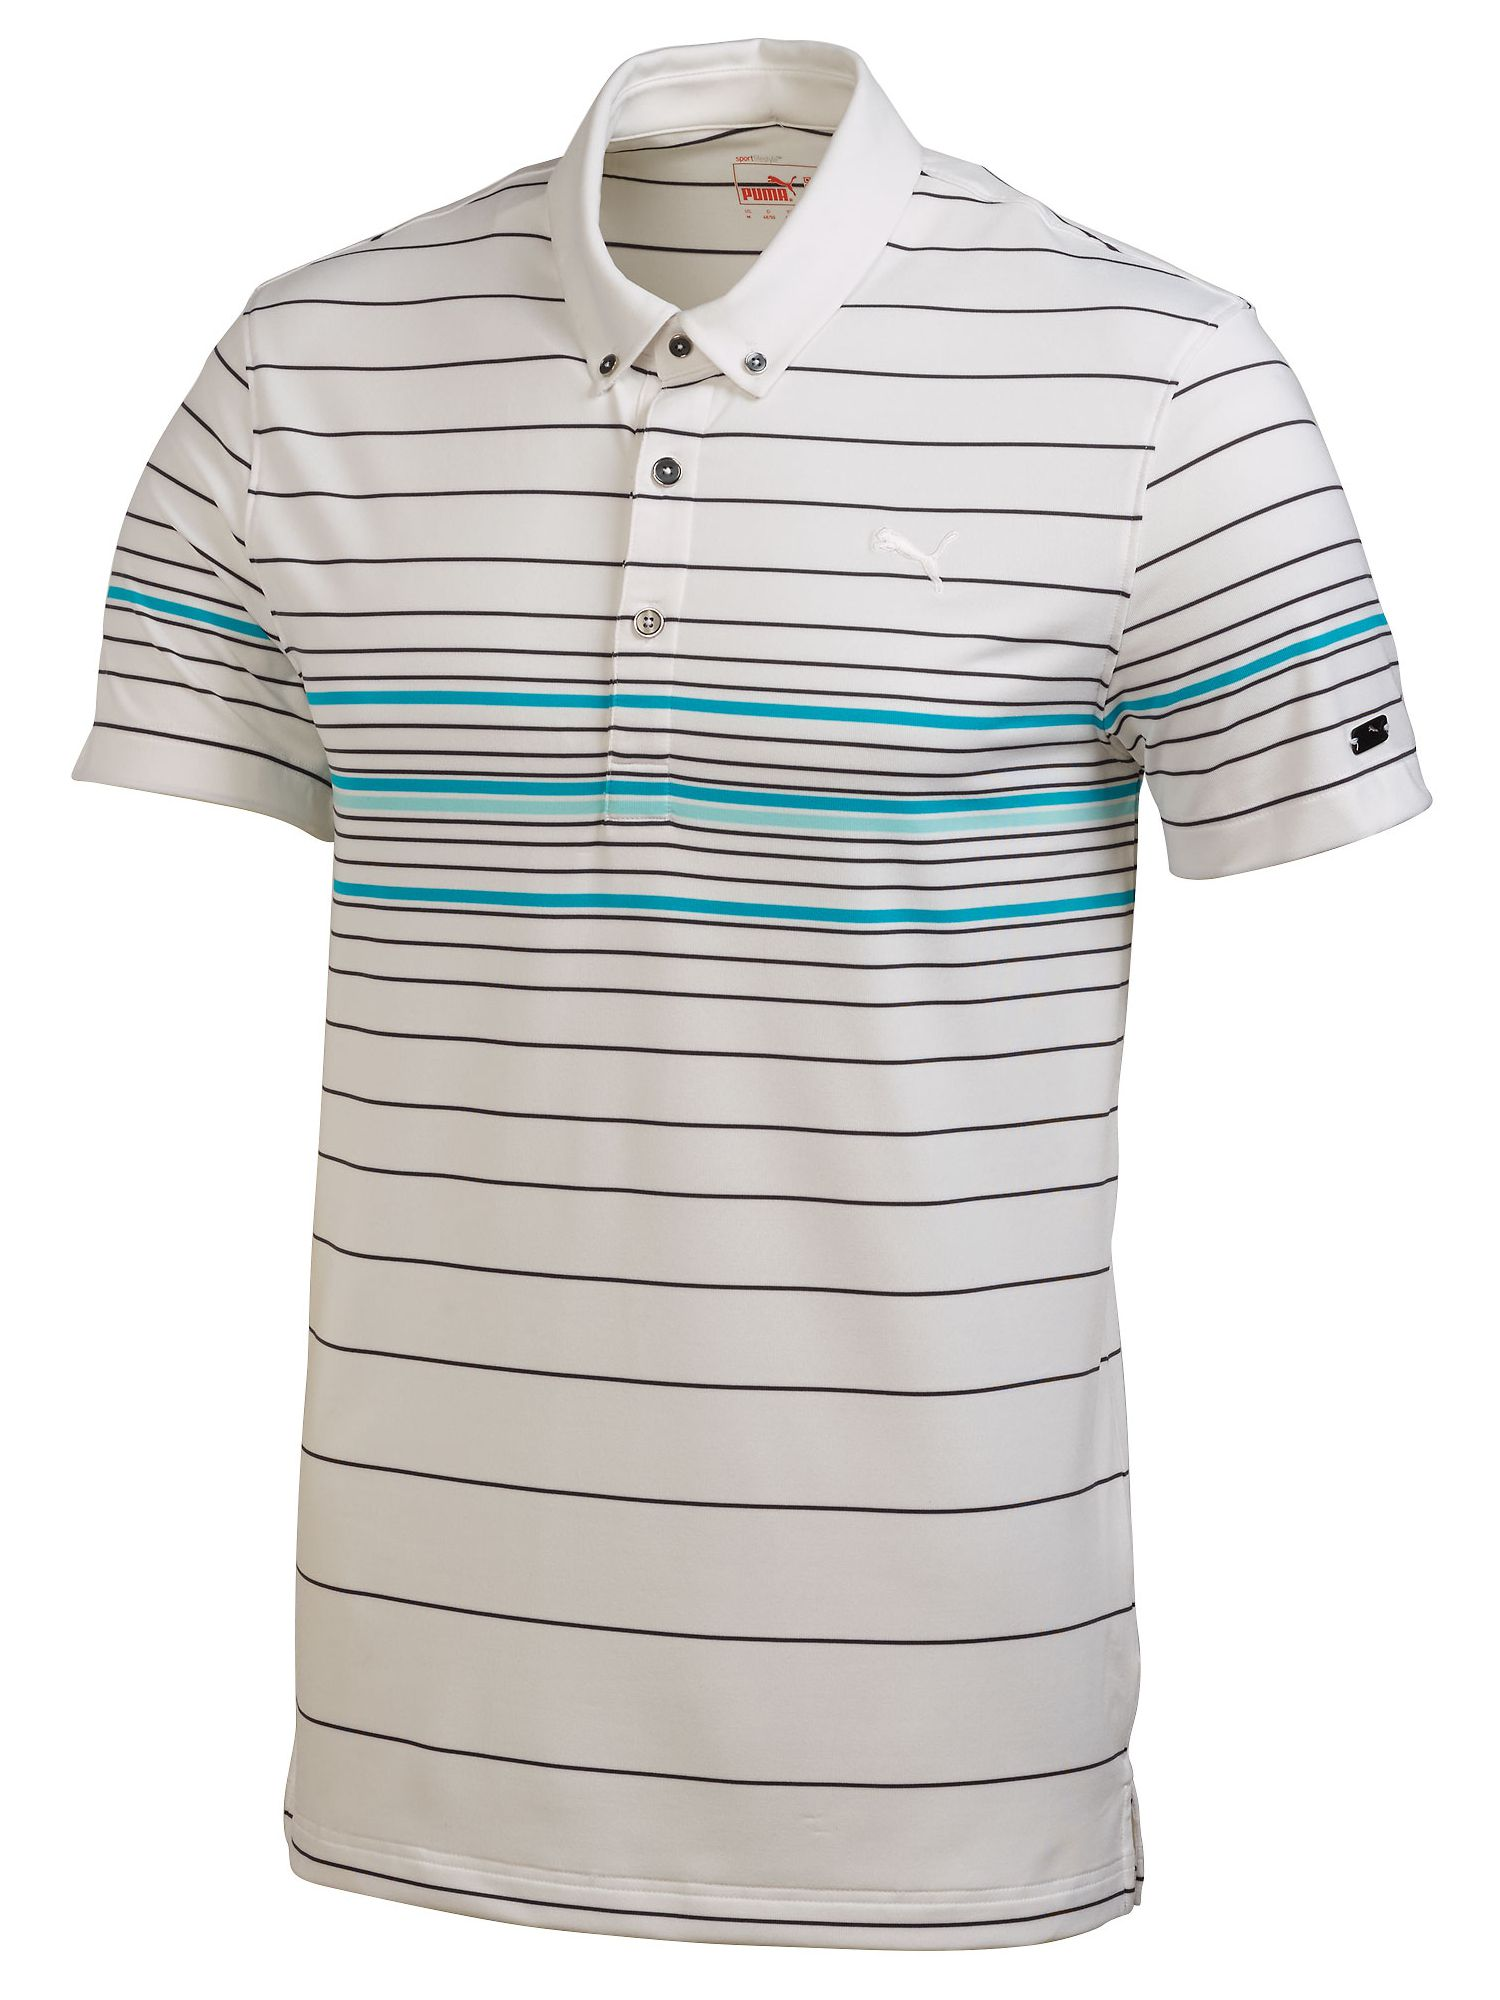 Lux YD stripe polo shirt